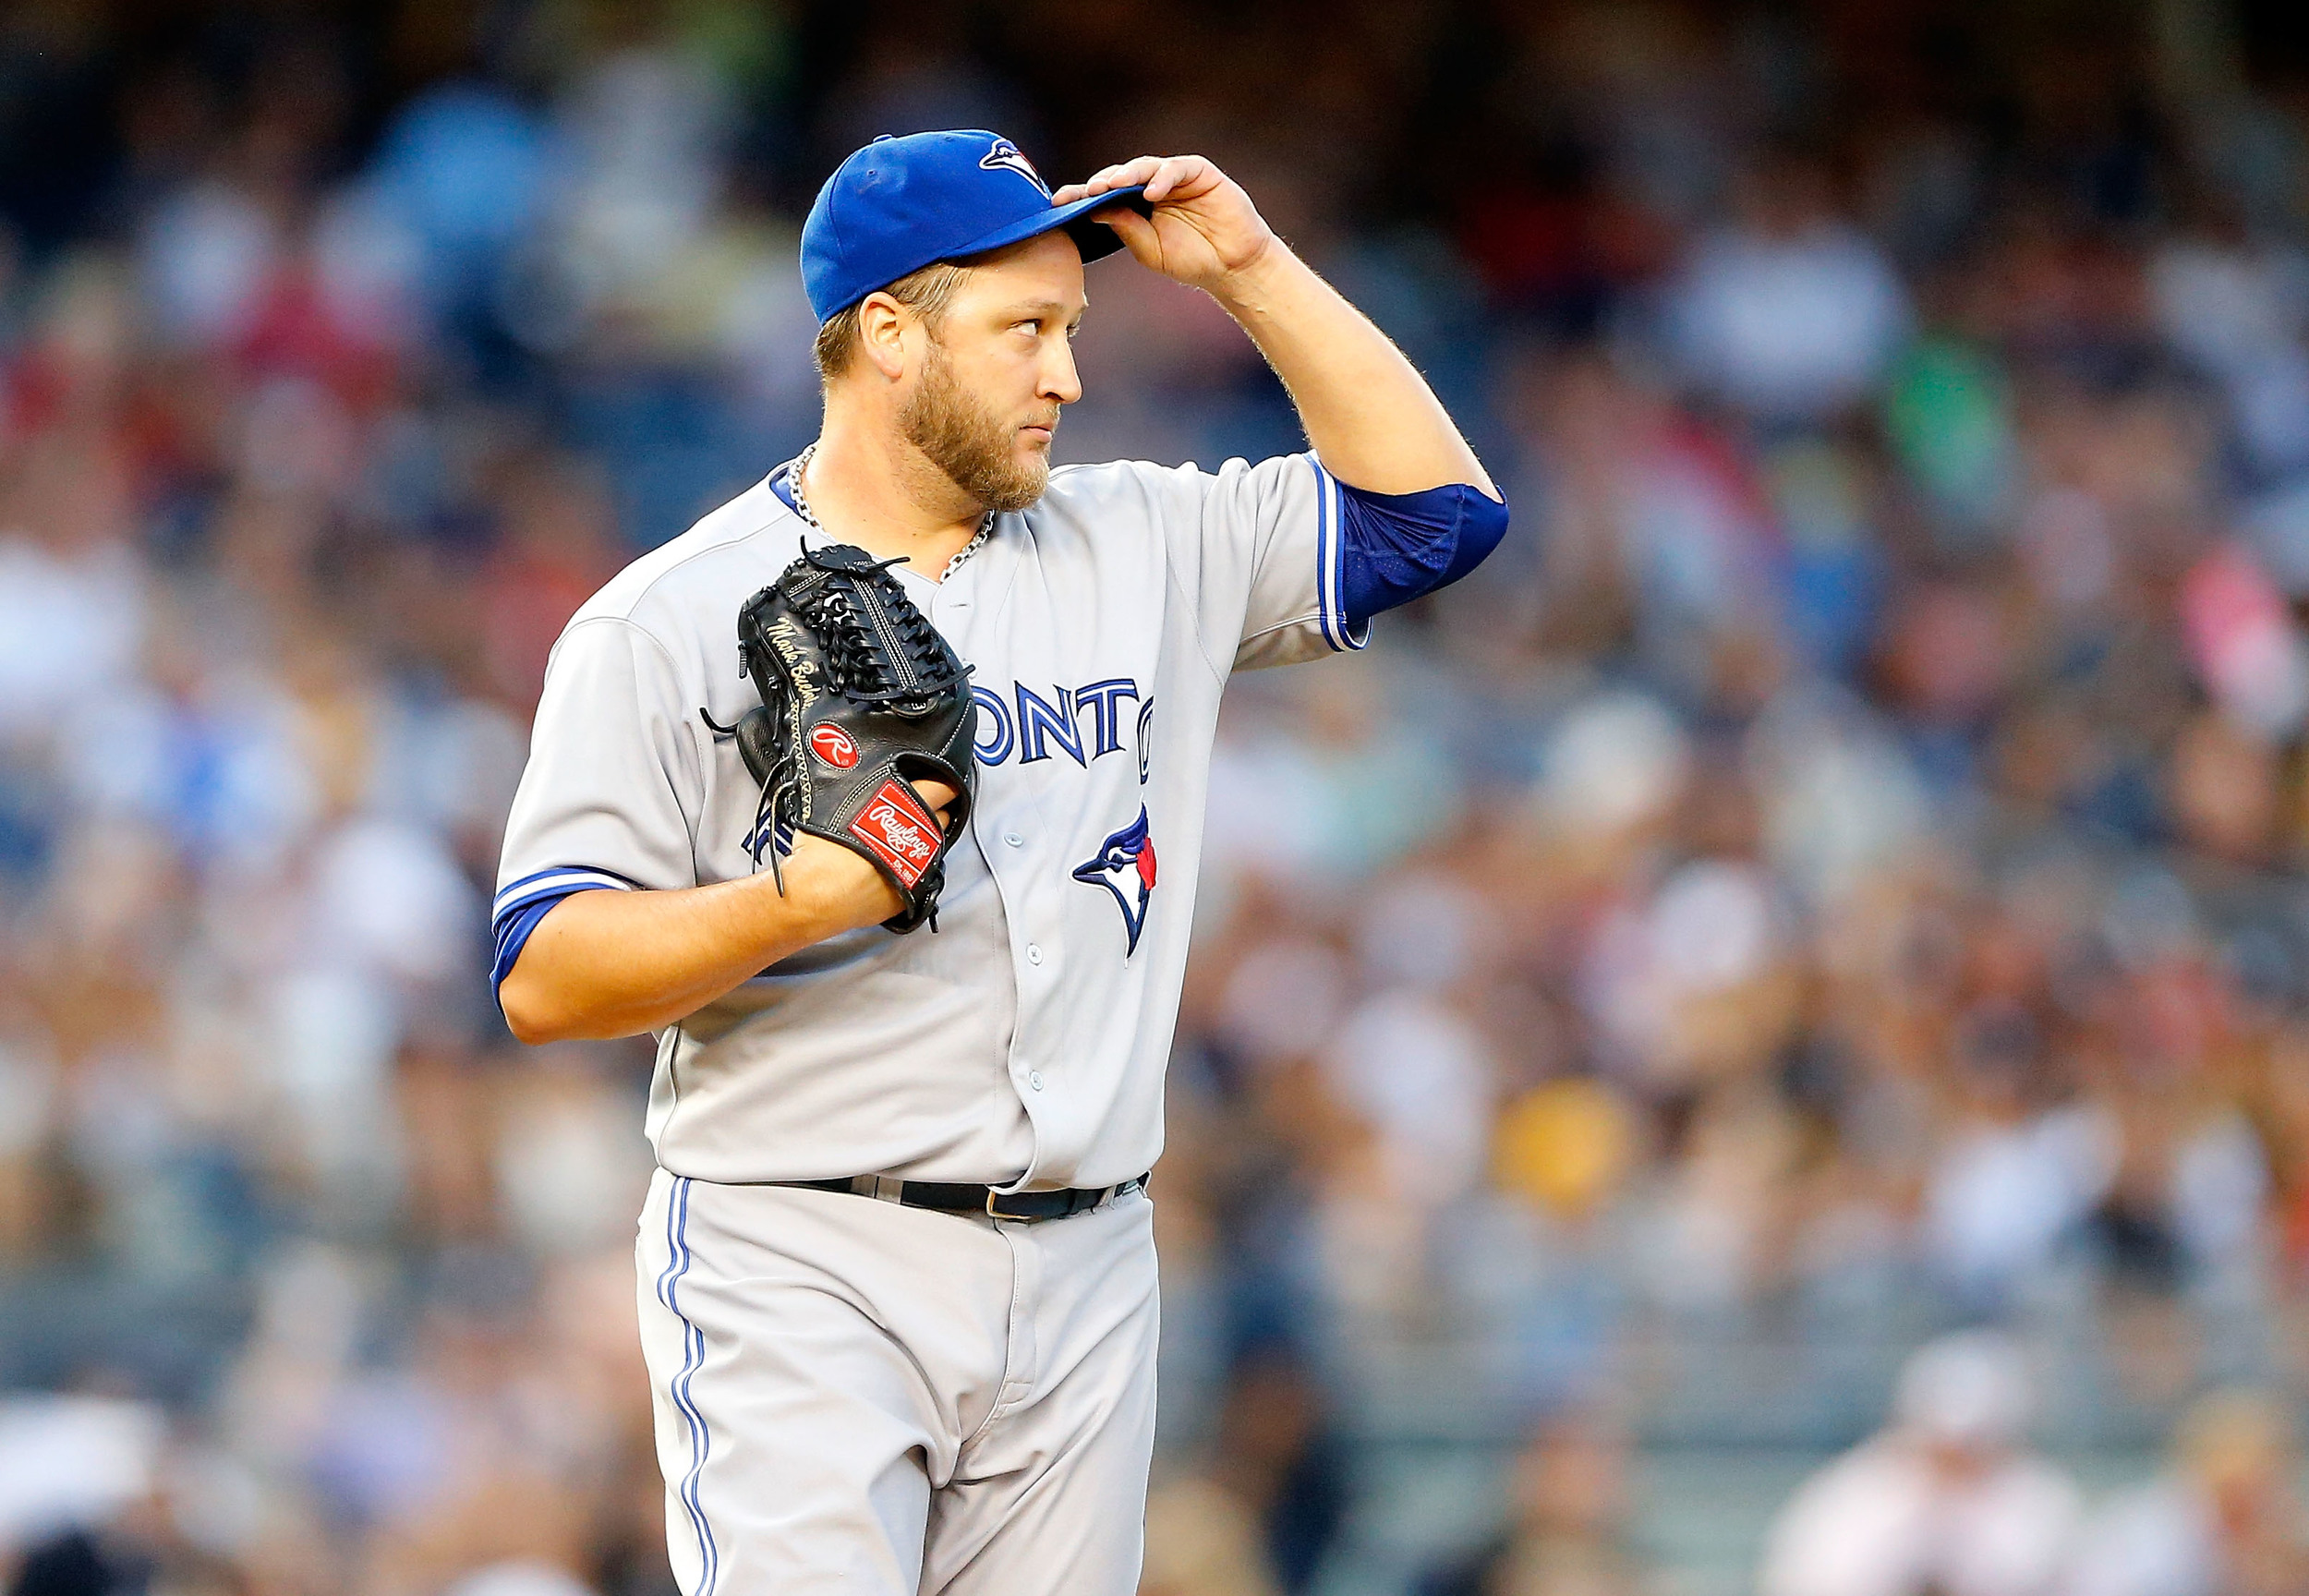 SECTION 108 IS GUILTY OF OVERLOOKING BUEHRLE. BUT HE'S NOT MAKING THAT MISTAKE AGAIN. (PHOTO:JIM MCISAAC/GETTY IMAGES)